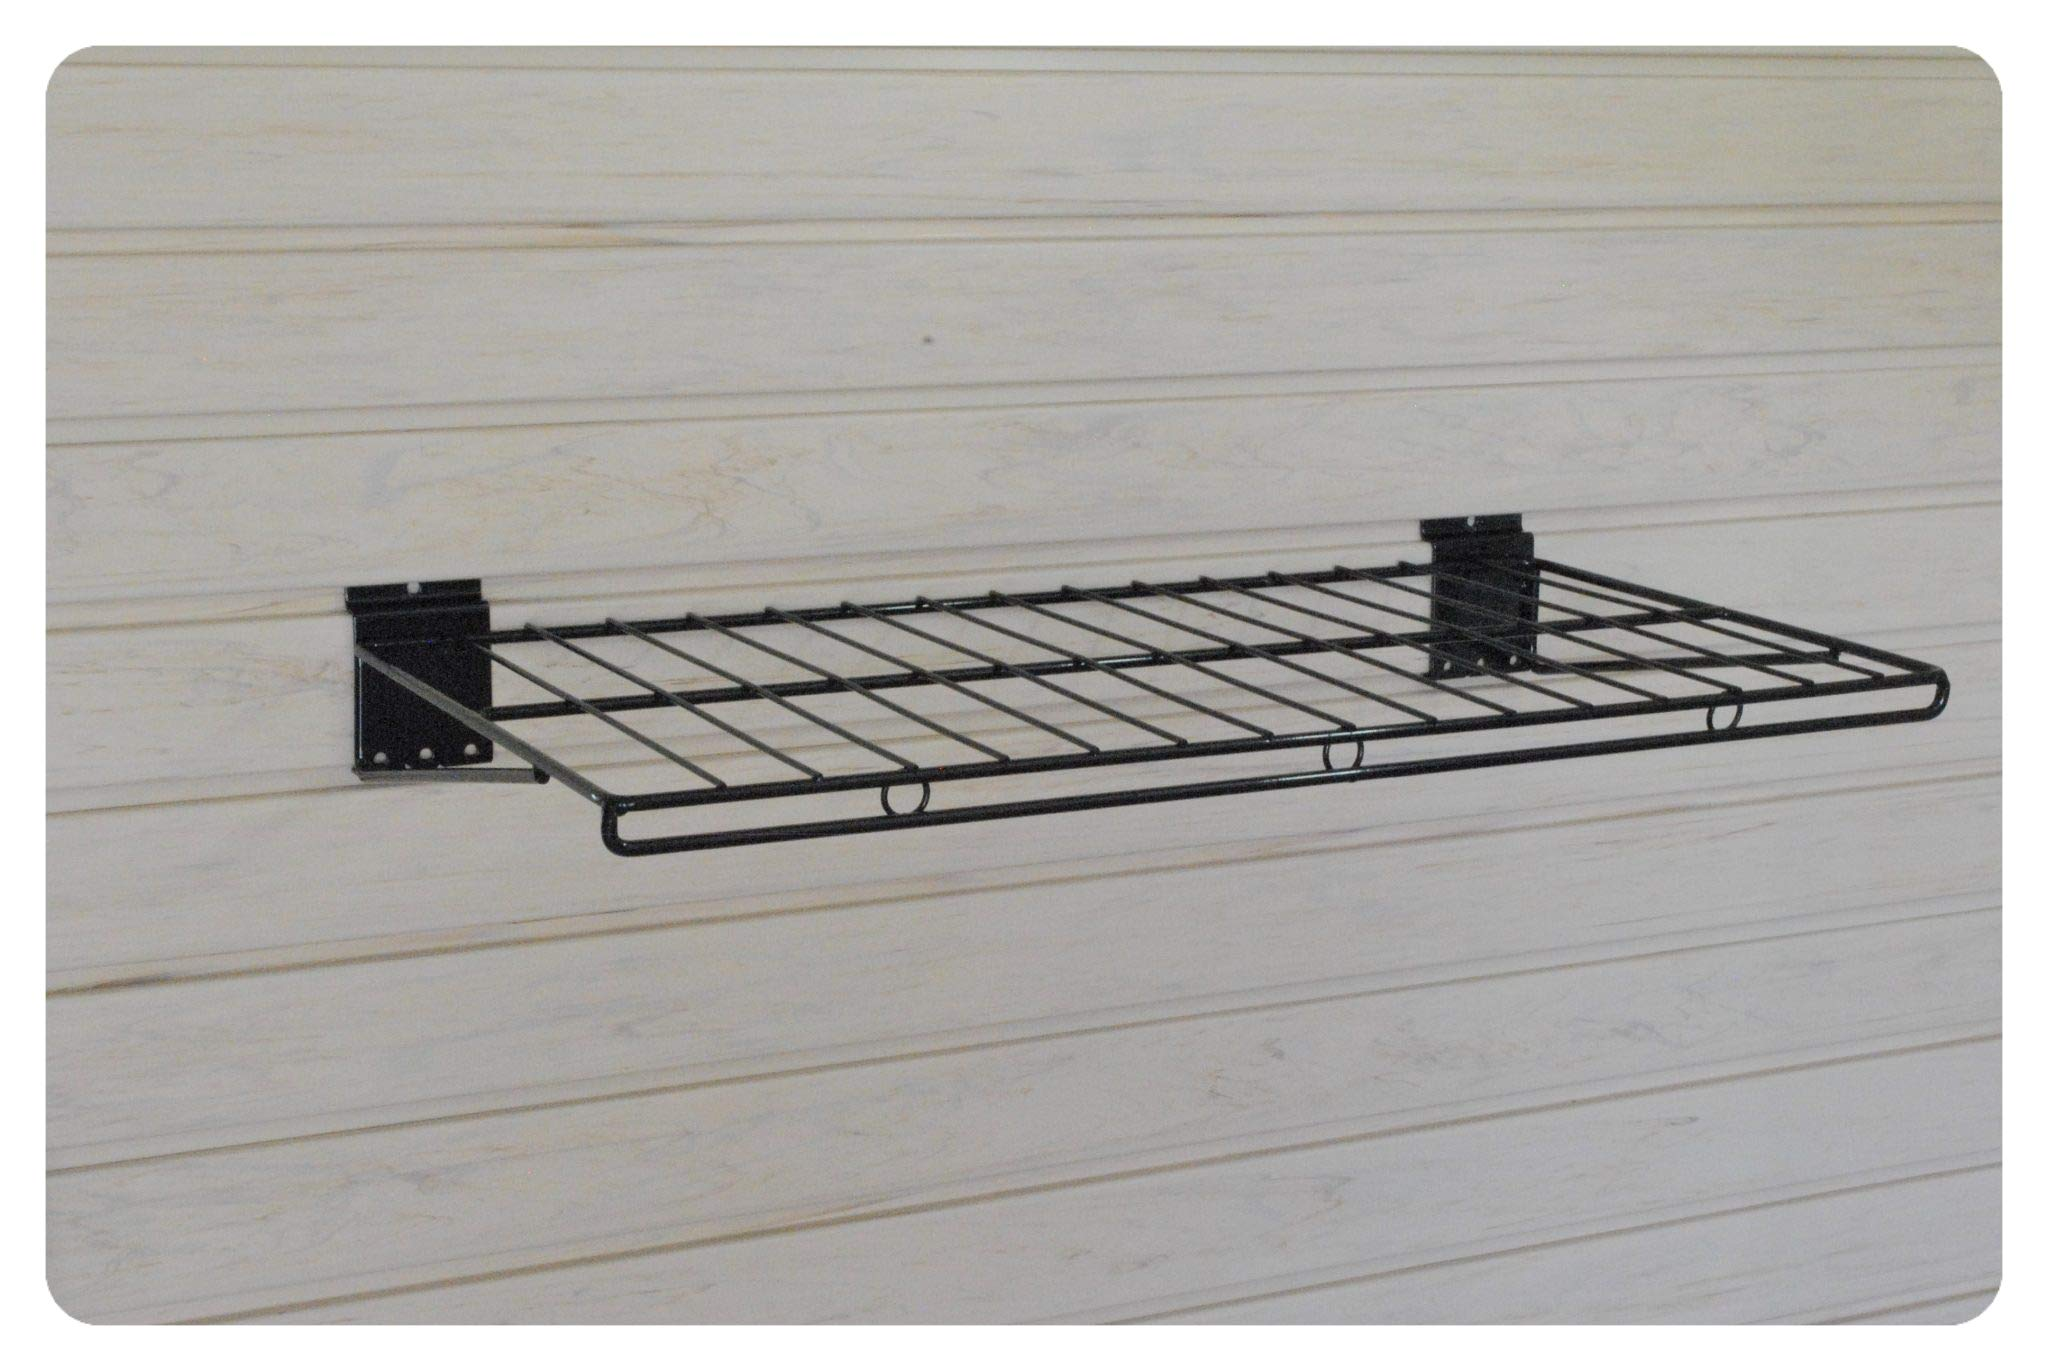 GaragePro 12'' x 24'' Ventilated Shelf for Slatwall Panels by The Garage Project